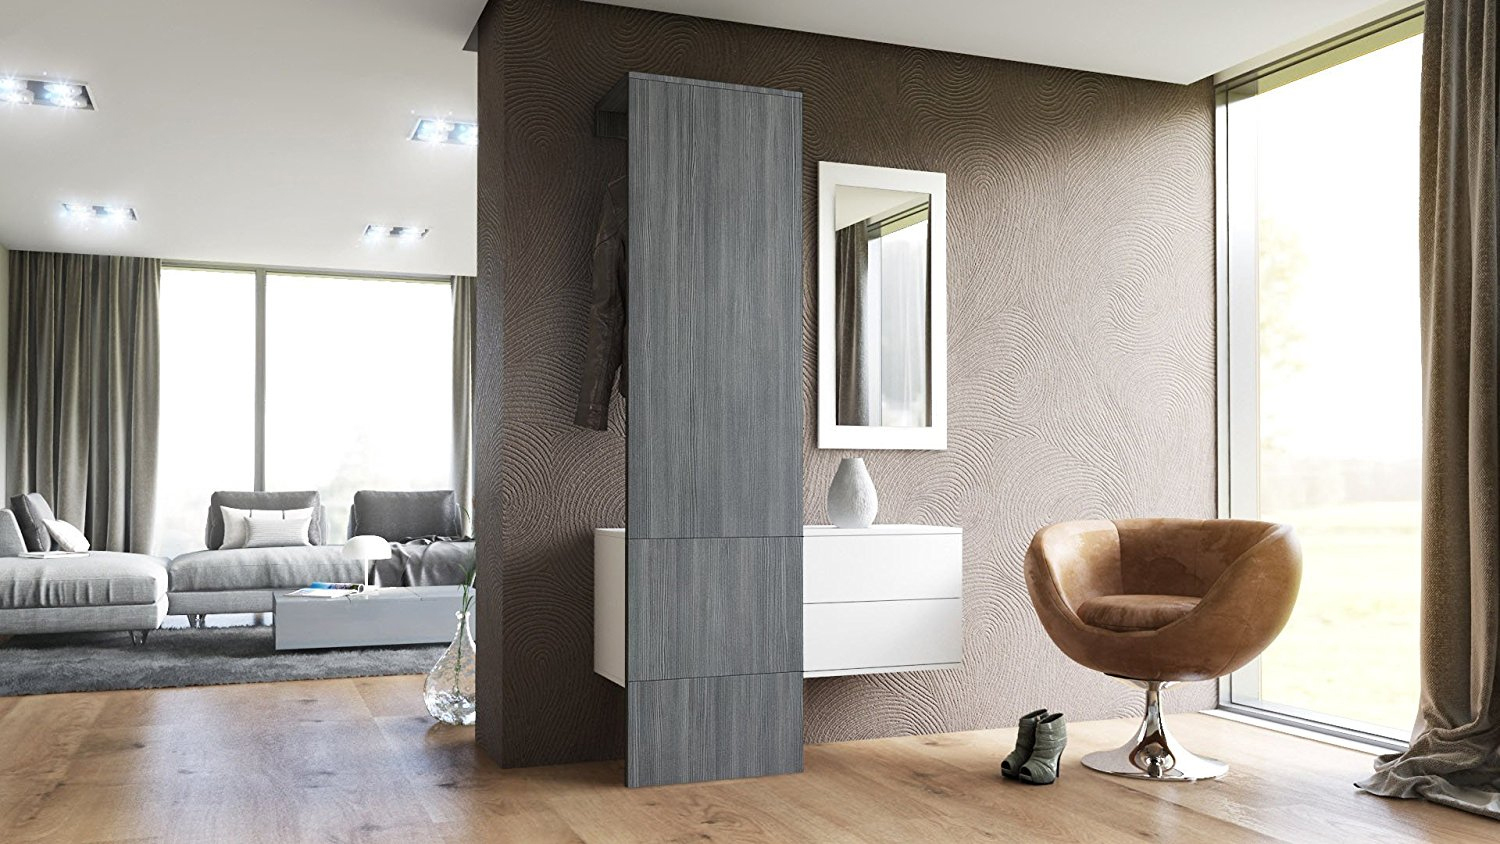 entrata moderna neve composizione 2 ingresso mobile corridoio. Black Bedroom Furniture Sets. Home Design Ideas